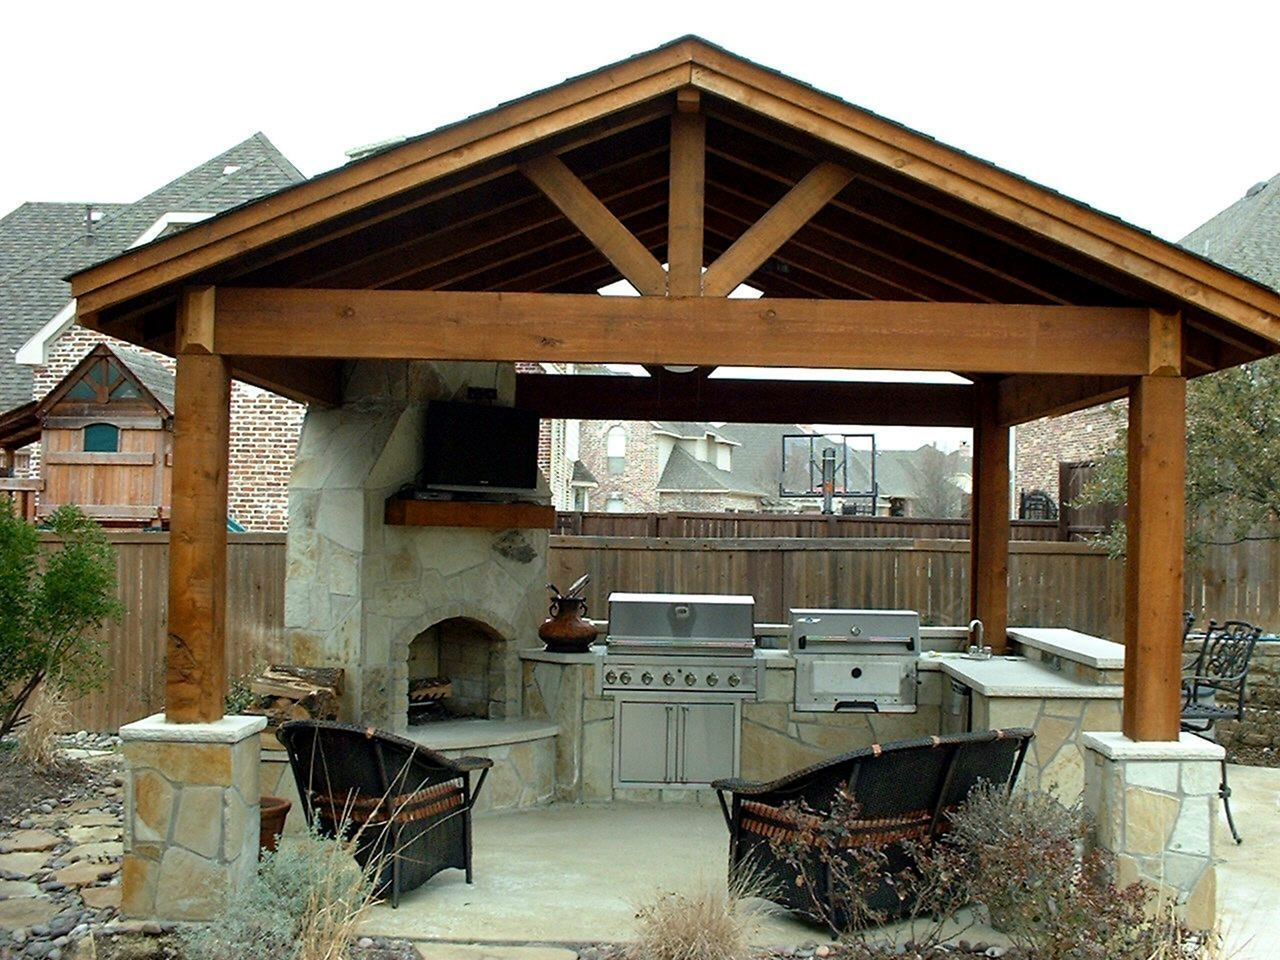 Rustic Small Outdoor Kitchen Ideas 1 Roomy Outdoor Kitchen Design Outdoor Kitchen Decor Outdoor Kitchen Plans